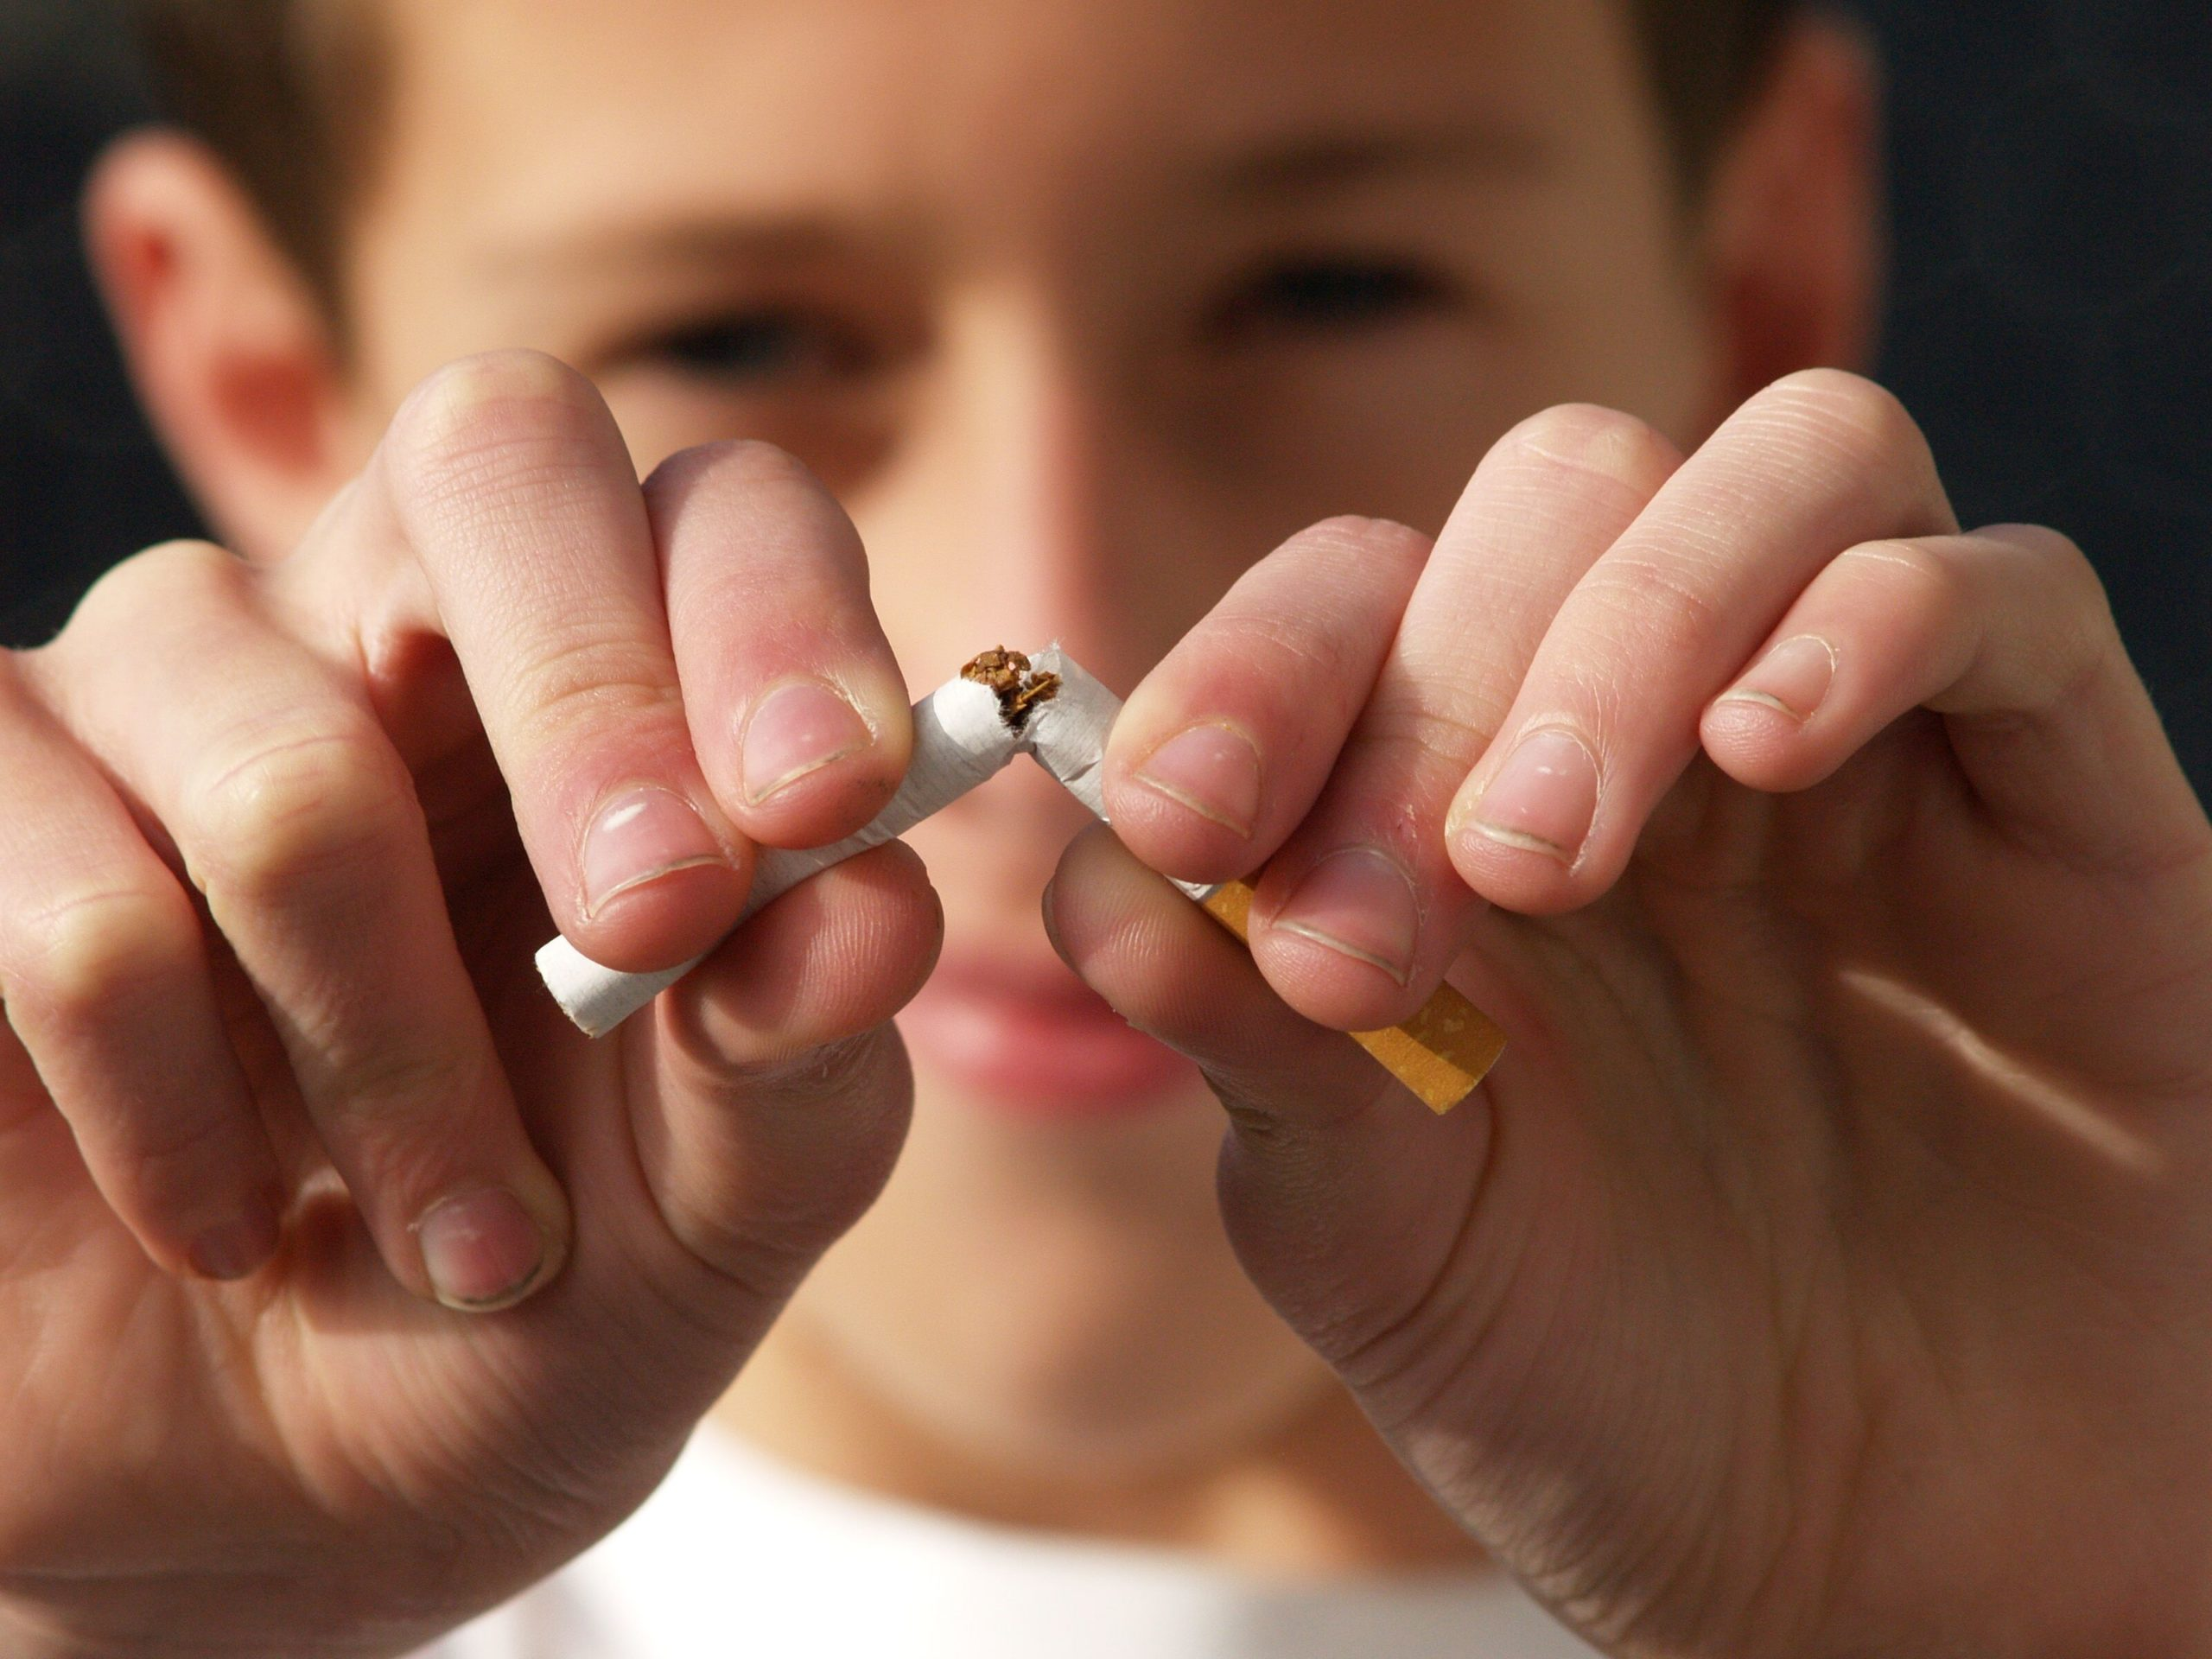 Laurel NE Dentist | Tobacco & Your Teeth: The Risks of Chewing and Smoking